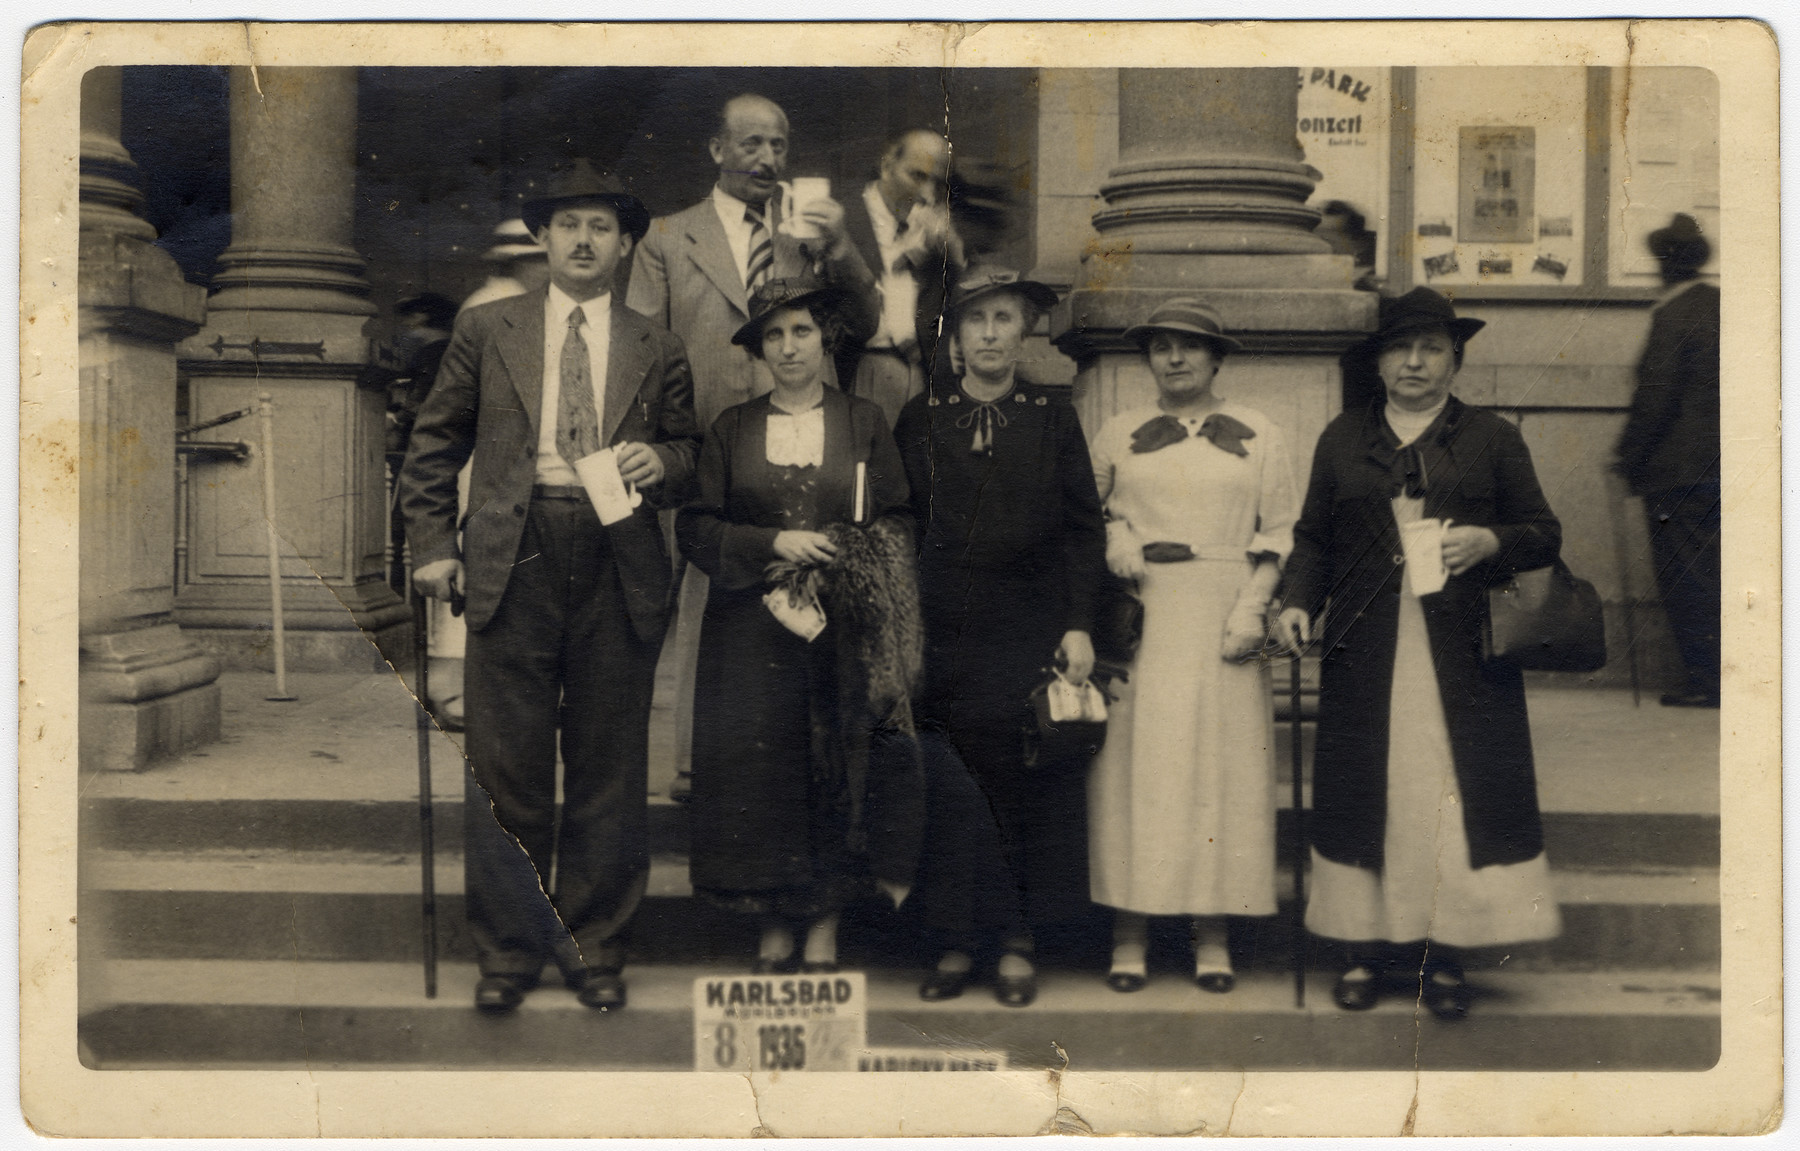 Group portrait of Jewish vacationers posing with glasses of mineral water at a spa in Karlsbad.   Pictured are members of the Lamm Schlesinger family (donor's maternal family).